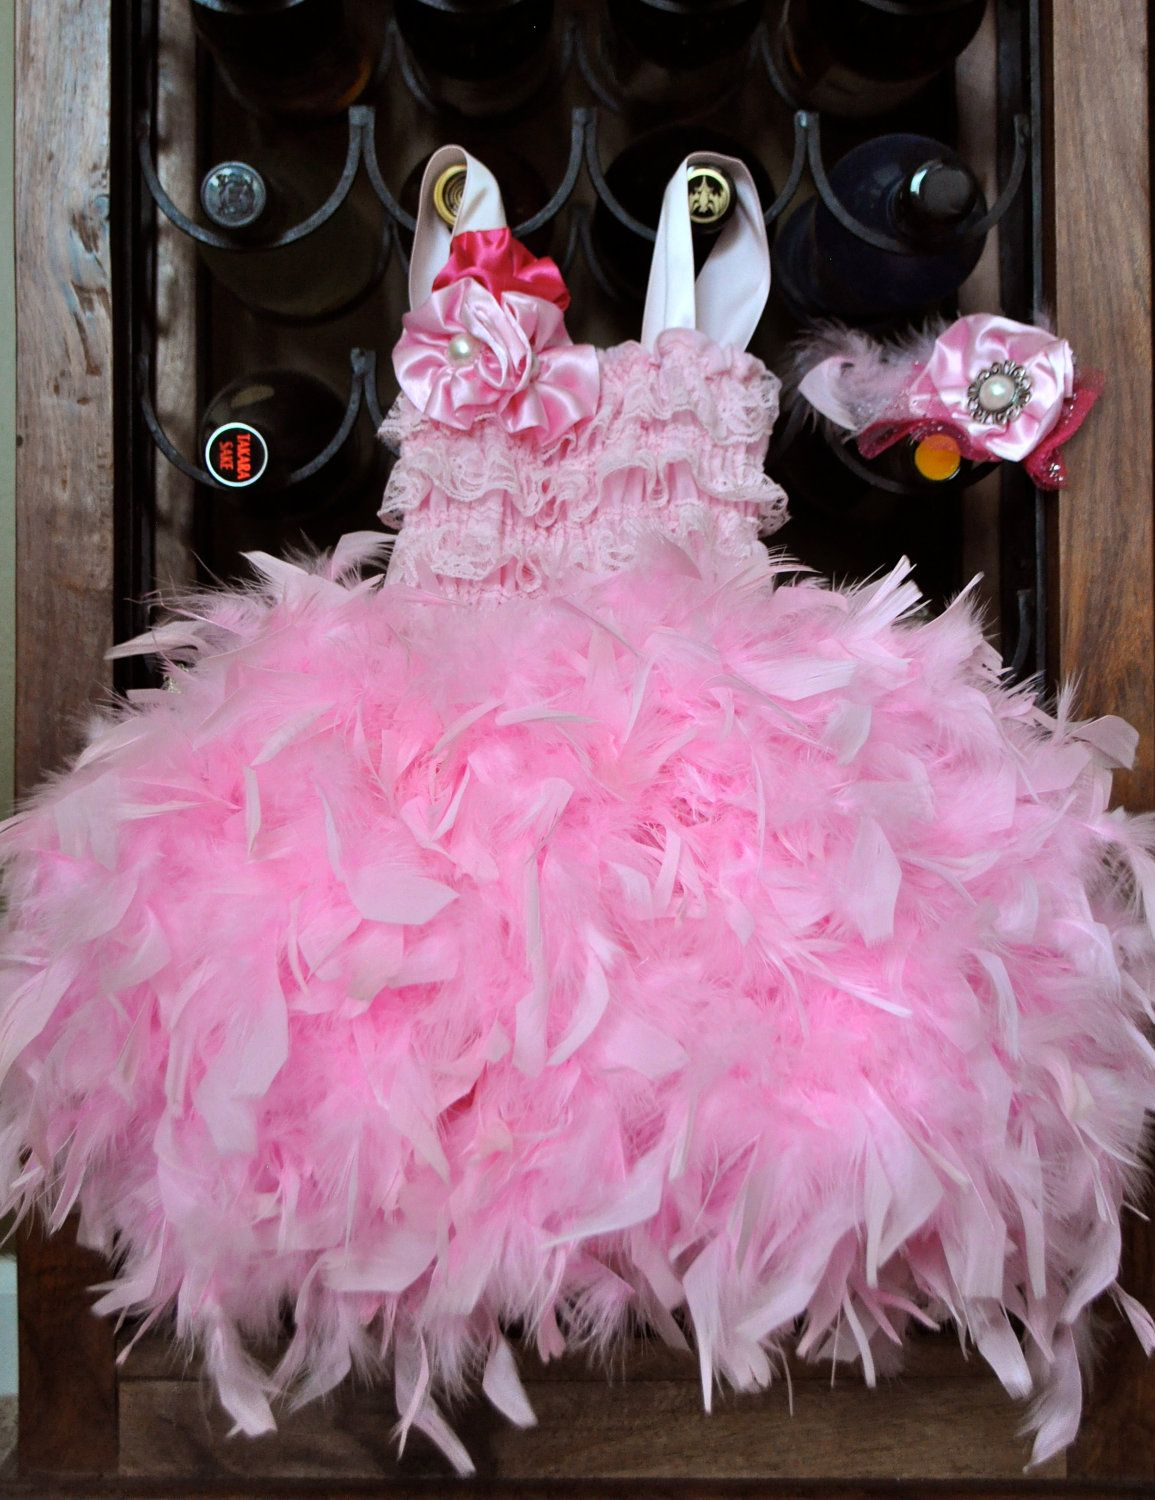 Bride flower girl birthday surprise couture feather dress pink t t